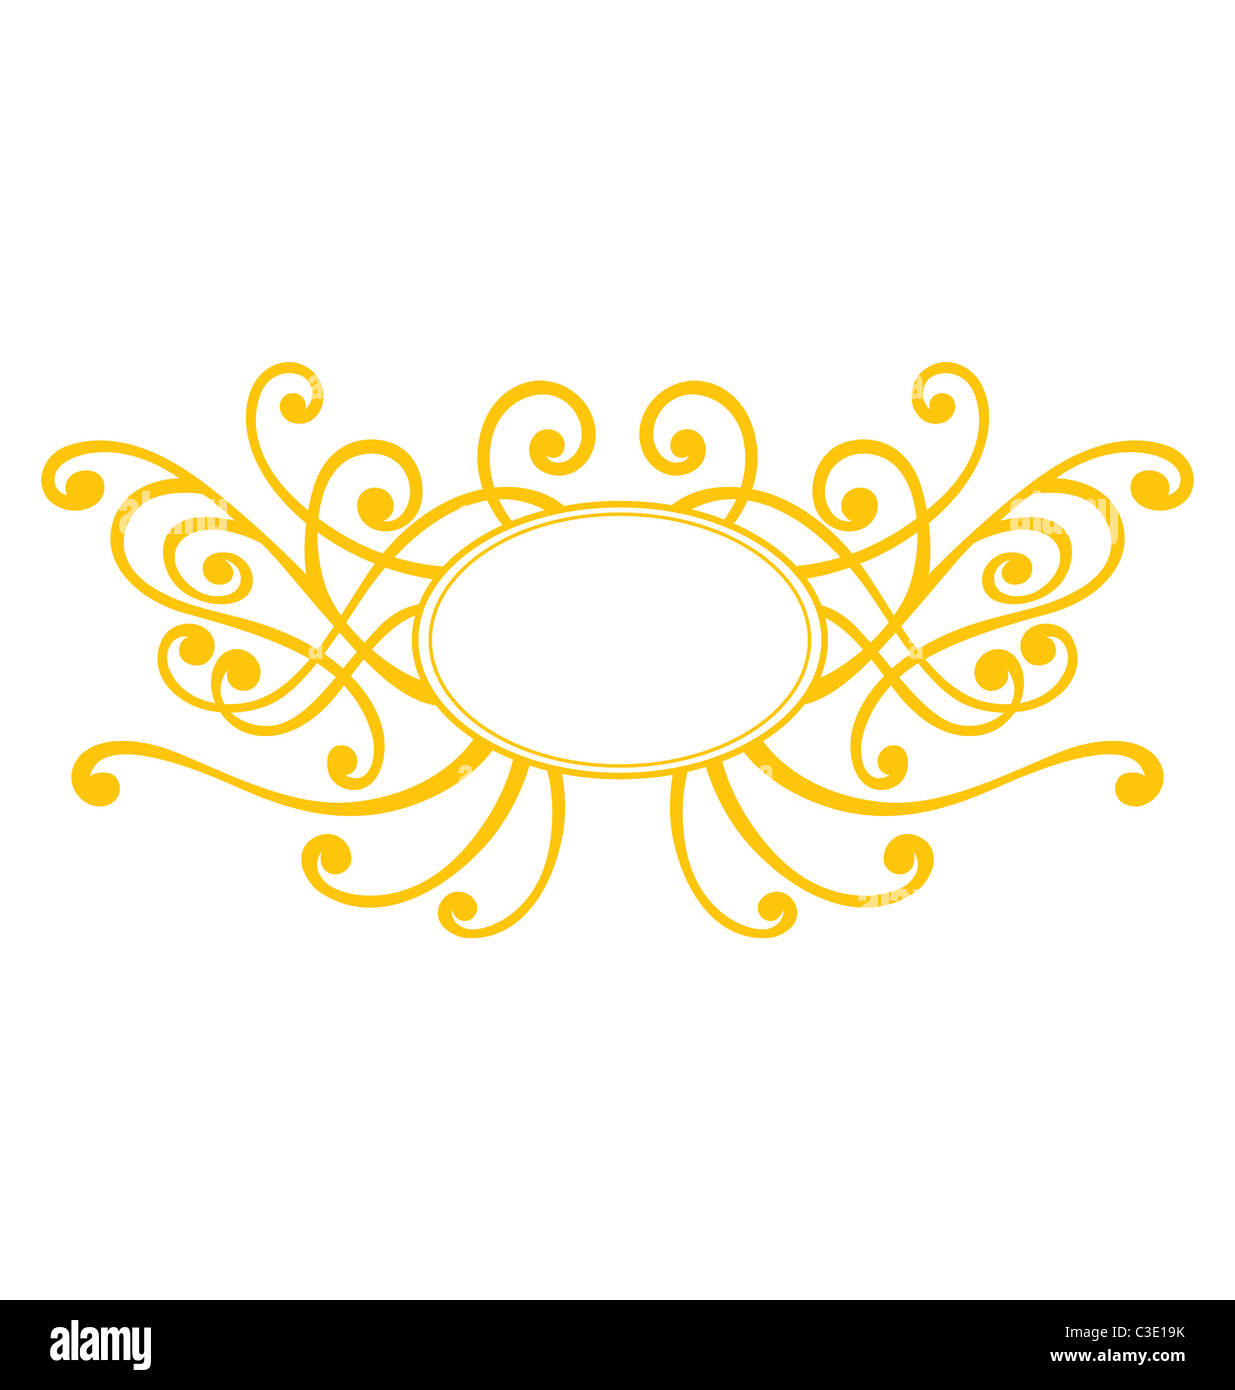 Vector Decorative Oval Frame Imágenes De Stock & Vector Decorative ...